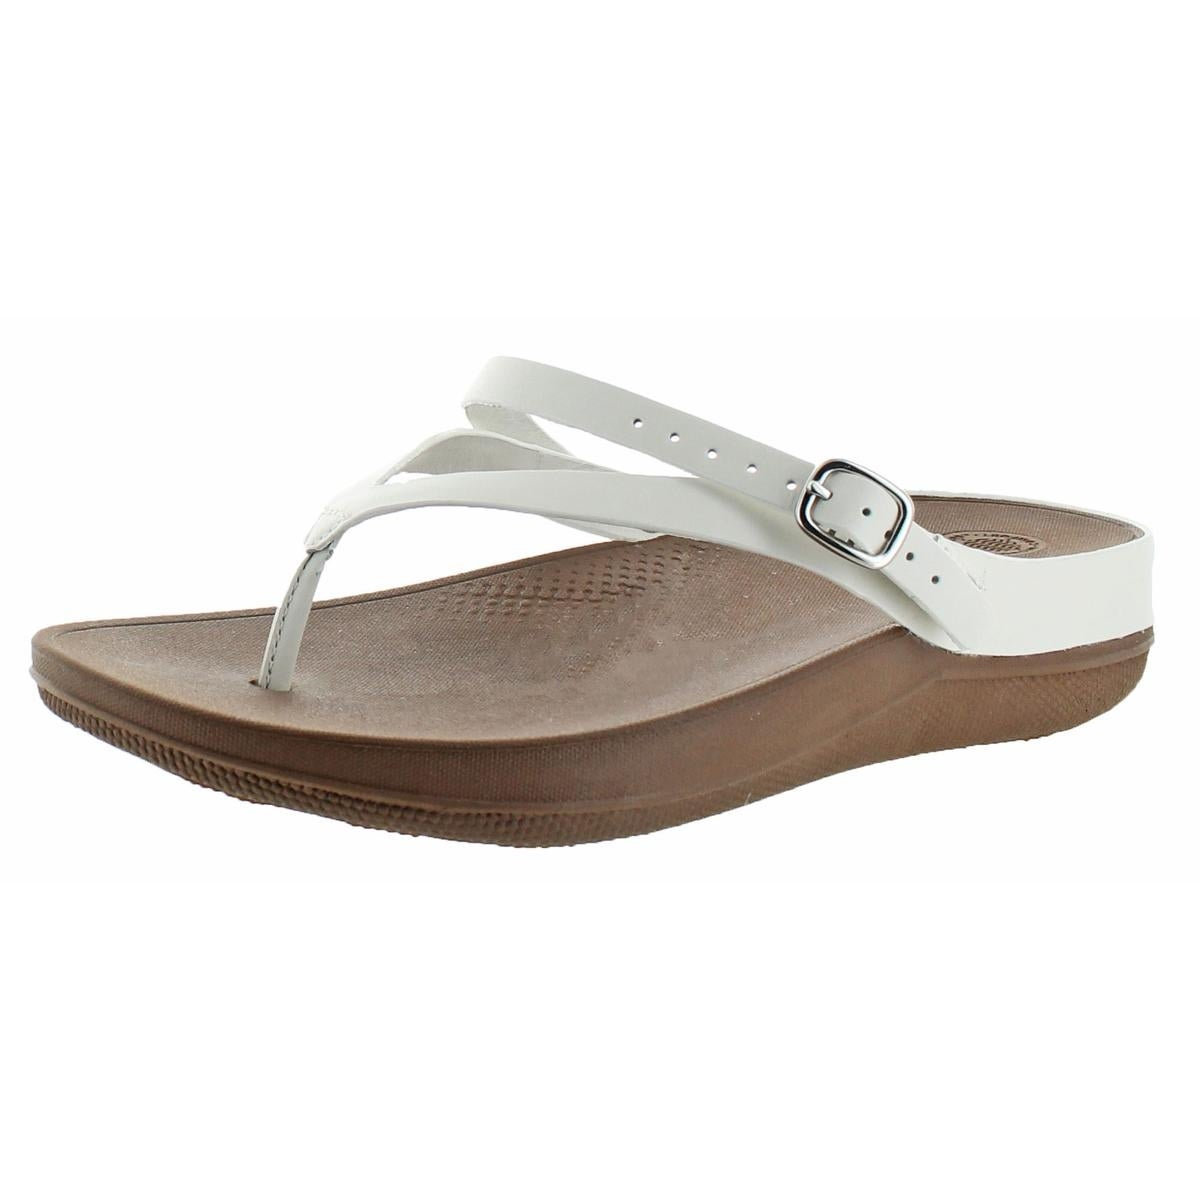 d2a3a57f36973 Fitflop Womens Flip Wedge Sandals Microwobbleboard